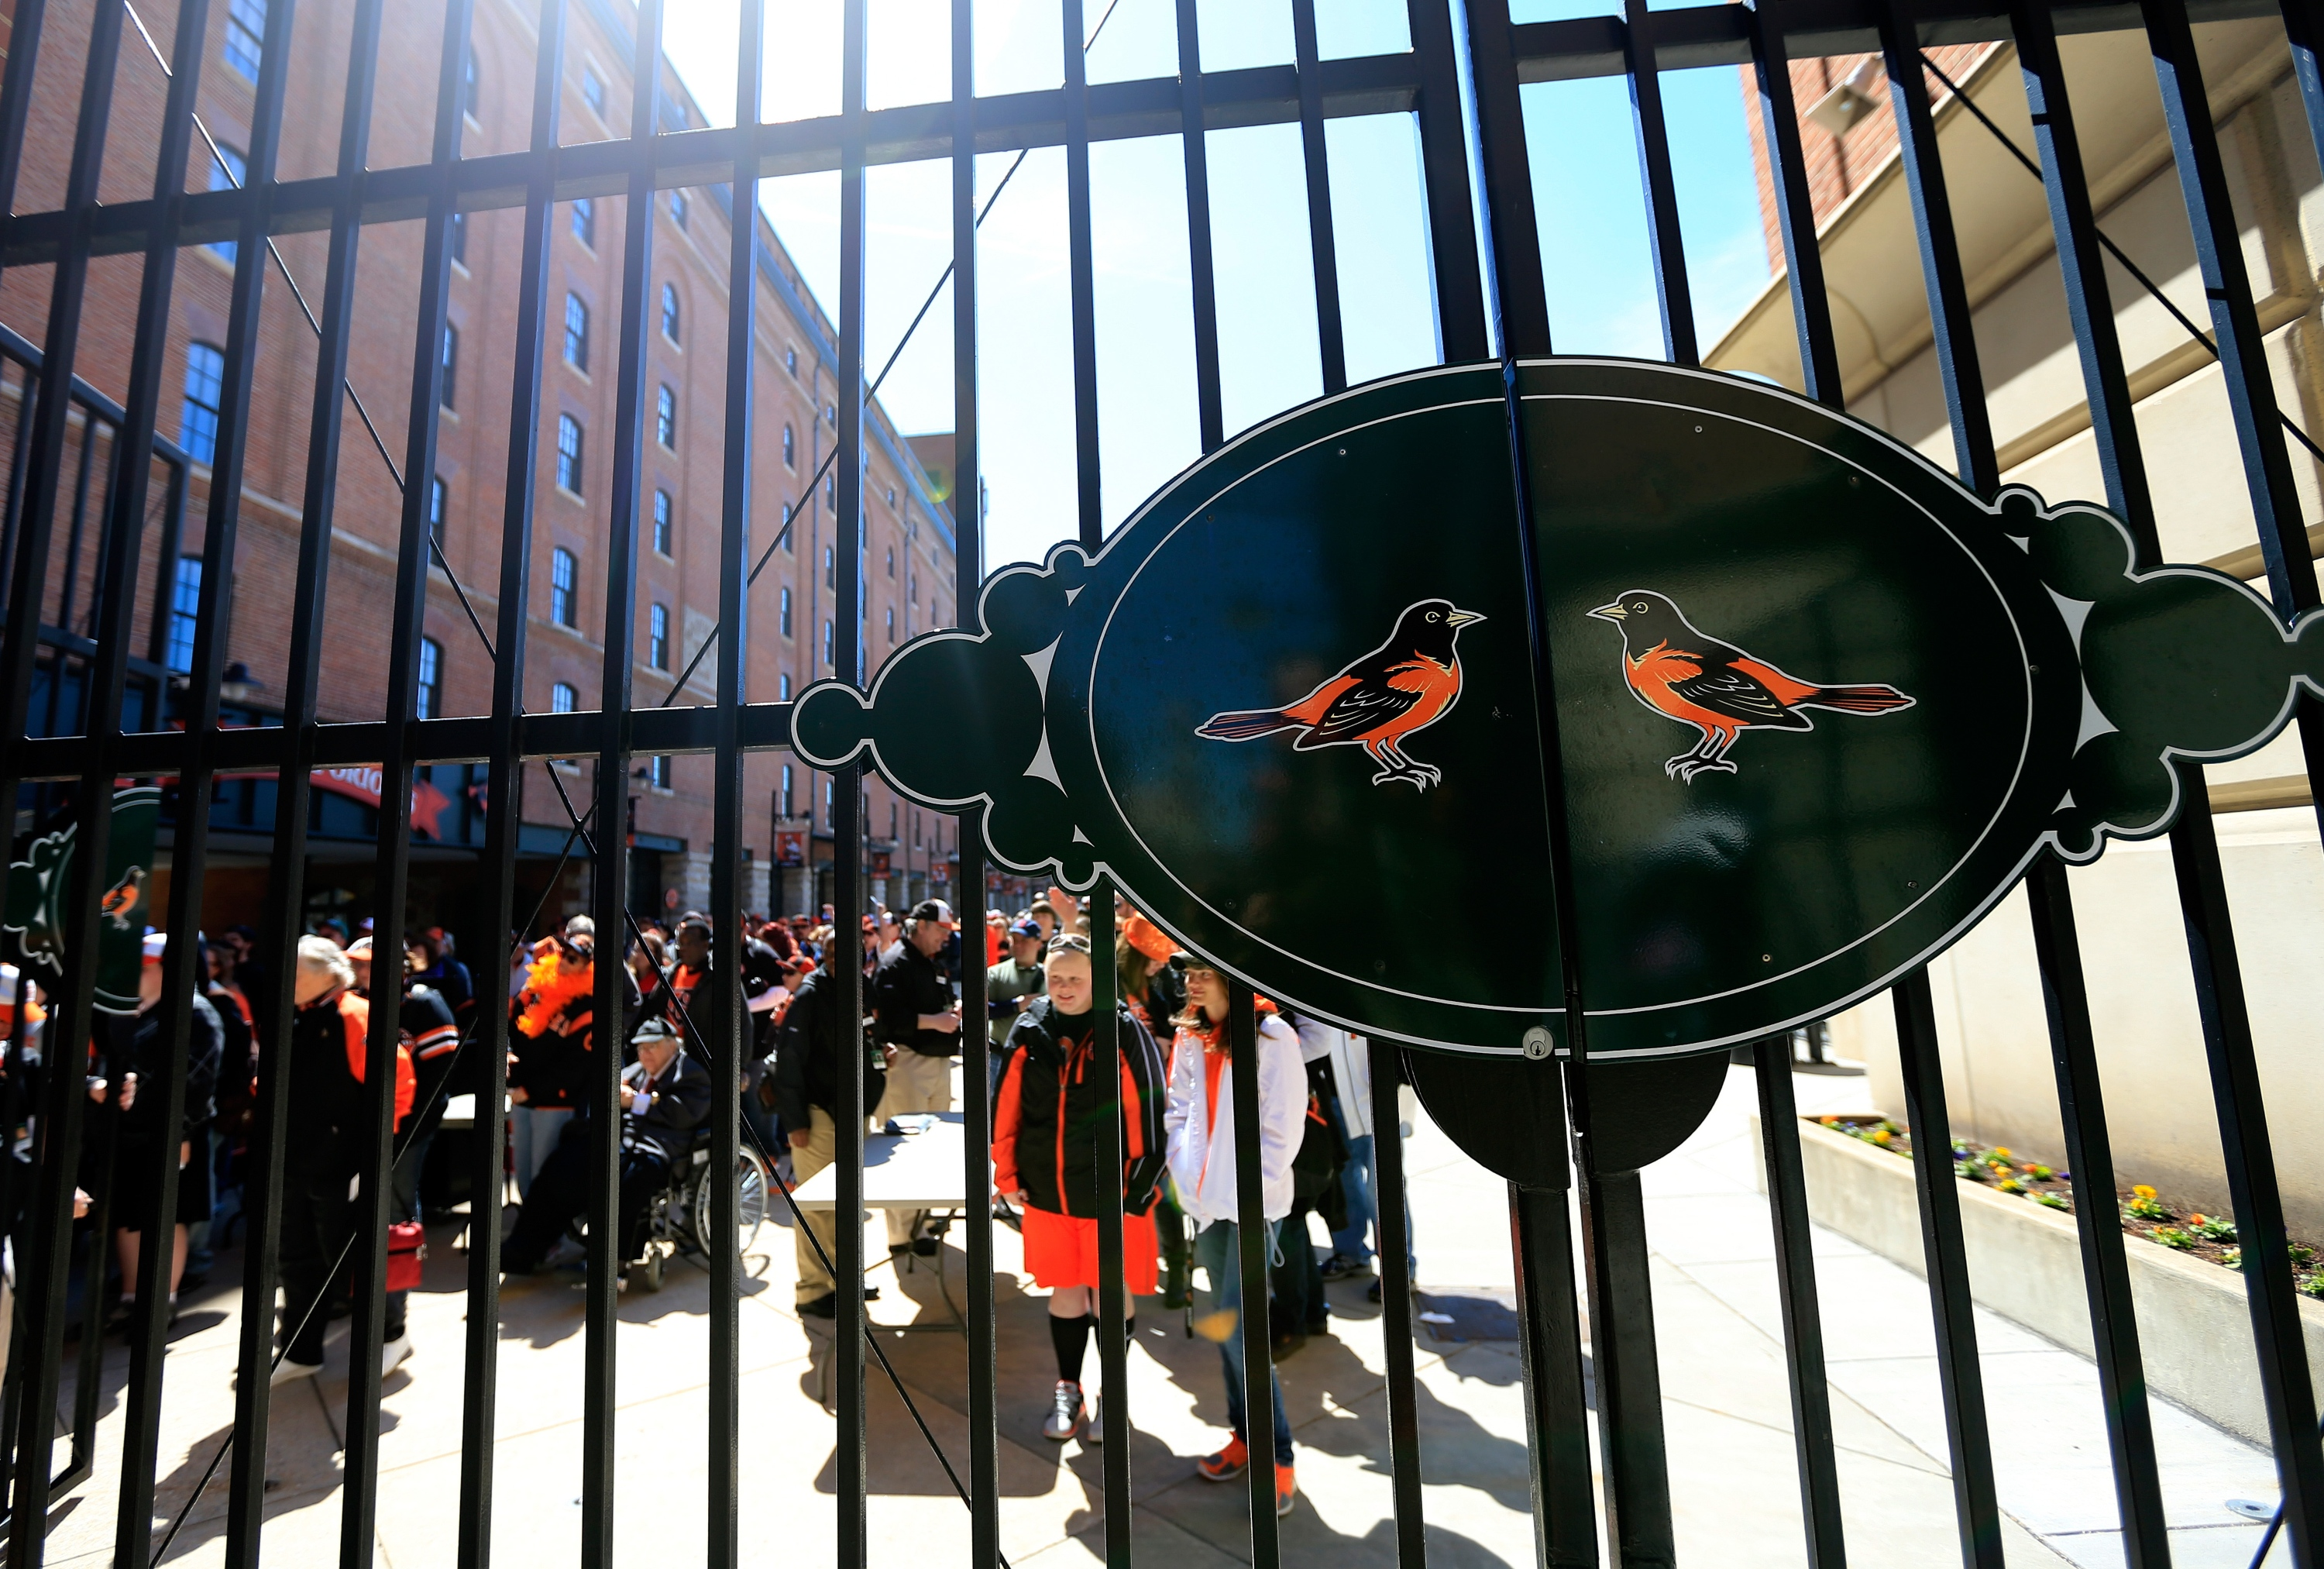 Sights and sounds of Orioles opening day